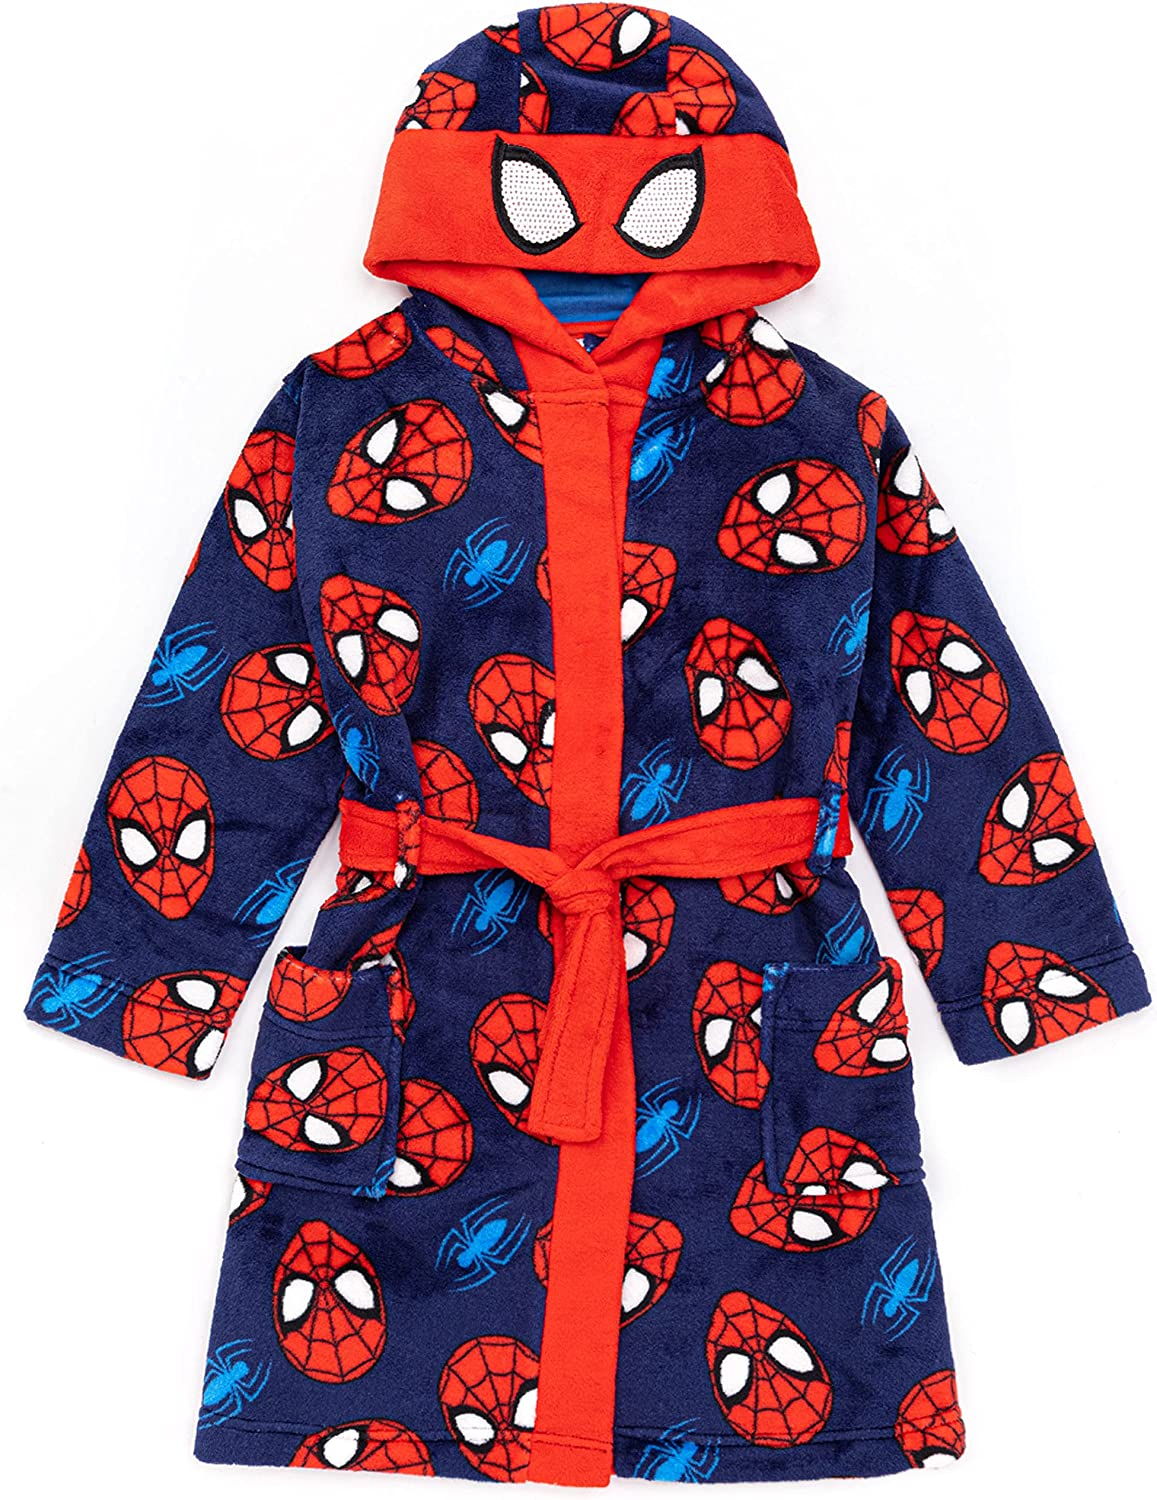 Marvel Spider-Man Dressing Gown Boys Kids Cosplay Pyjamas Robe: Clothing, Shoes & Jewelry